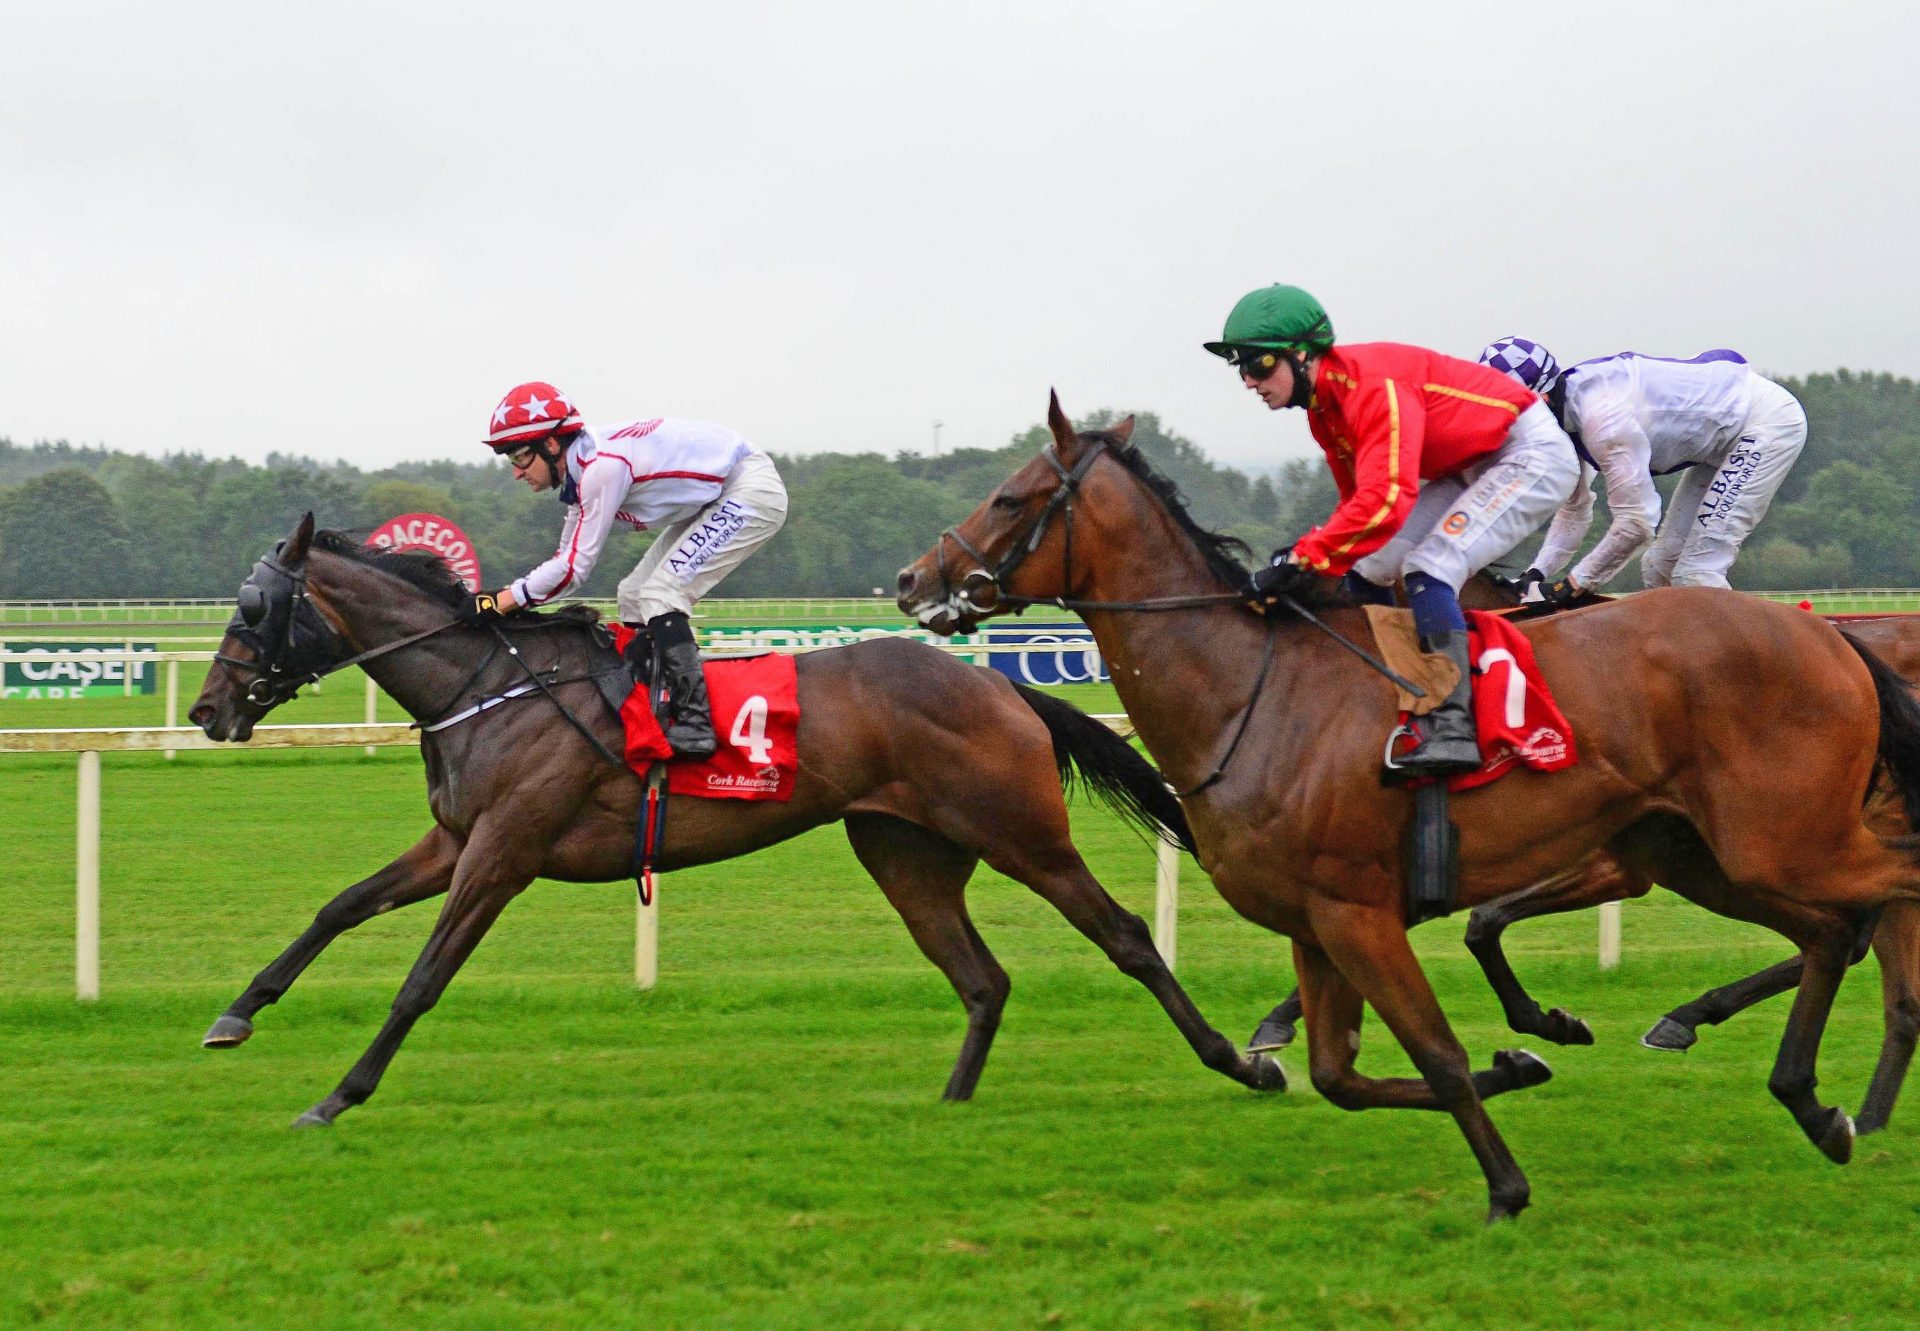 Formality (Fastnet Rock) winning the Gr.2 Silver Shadow Stakes